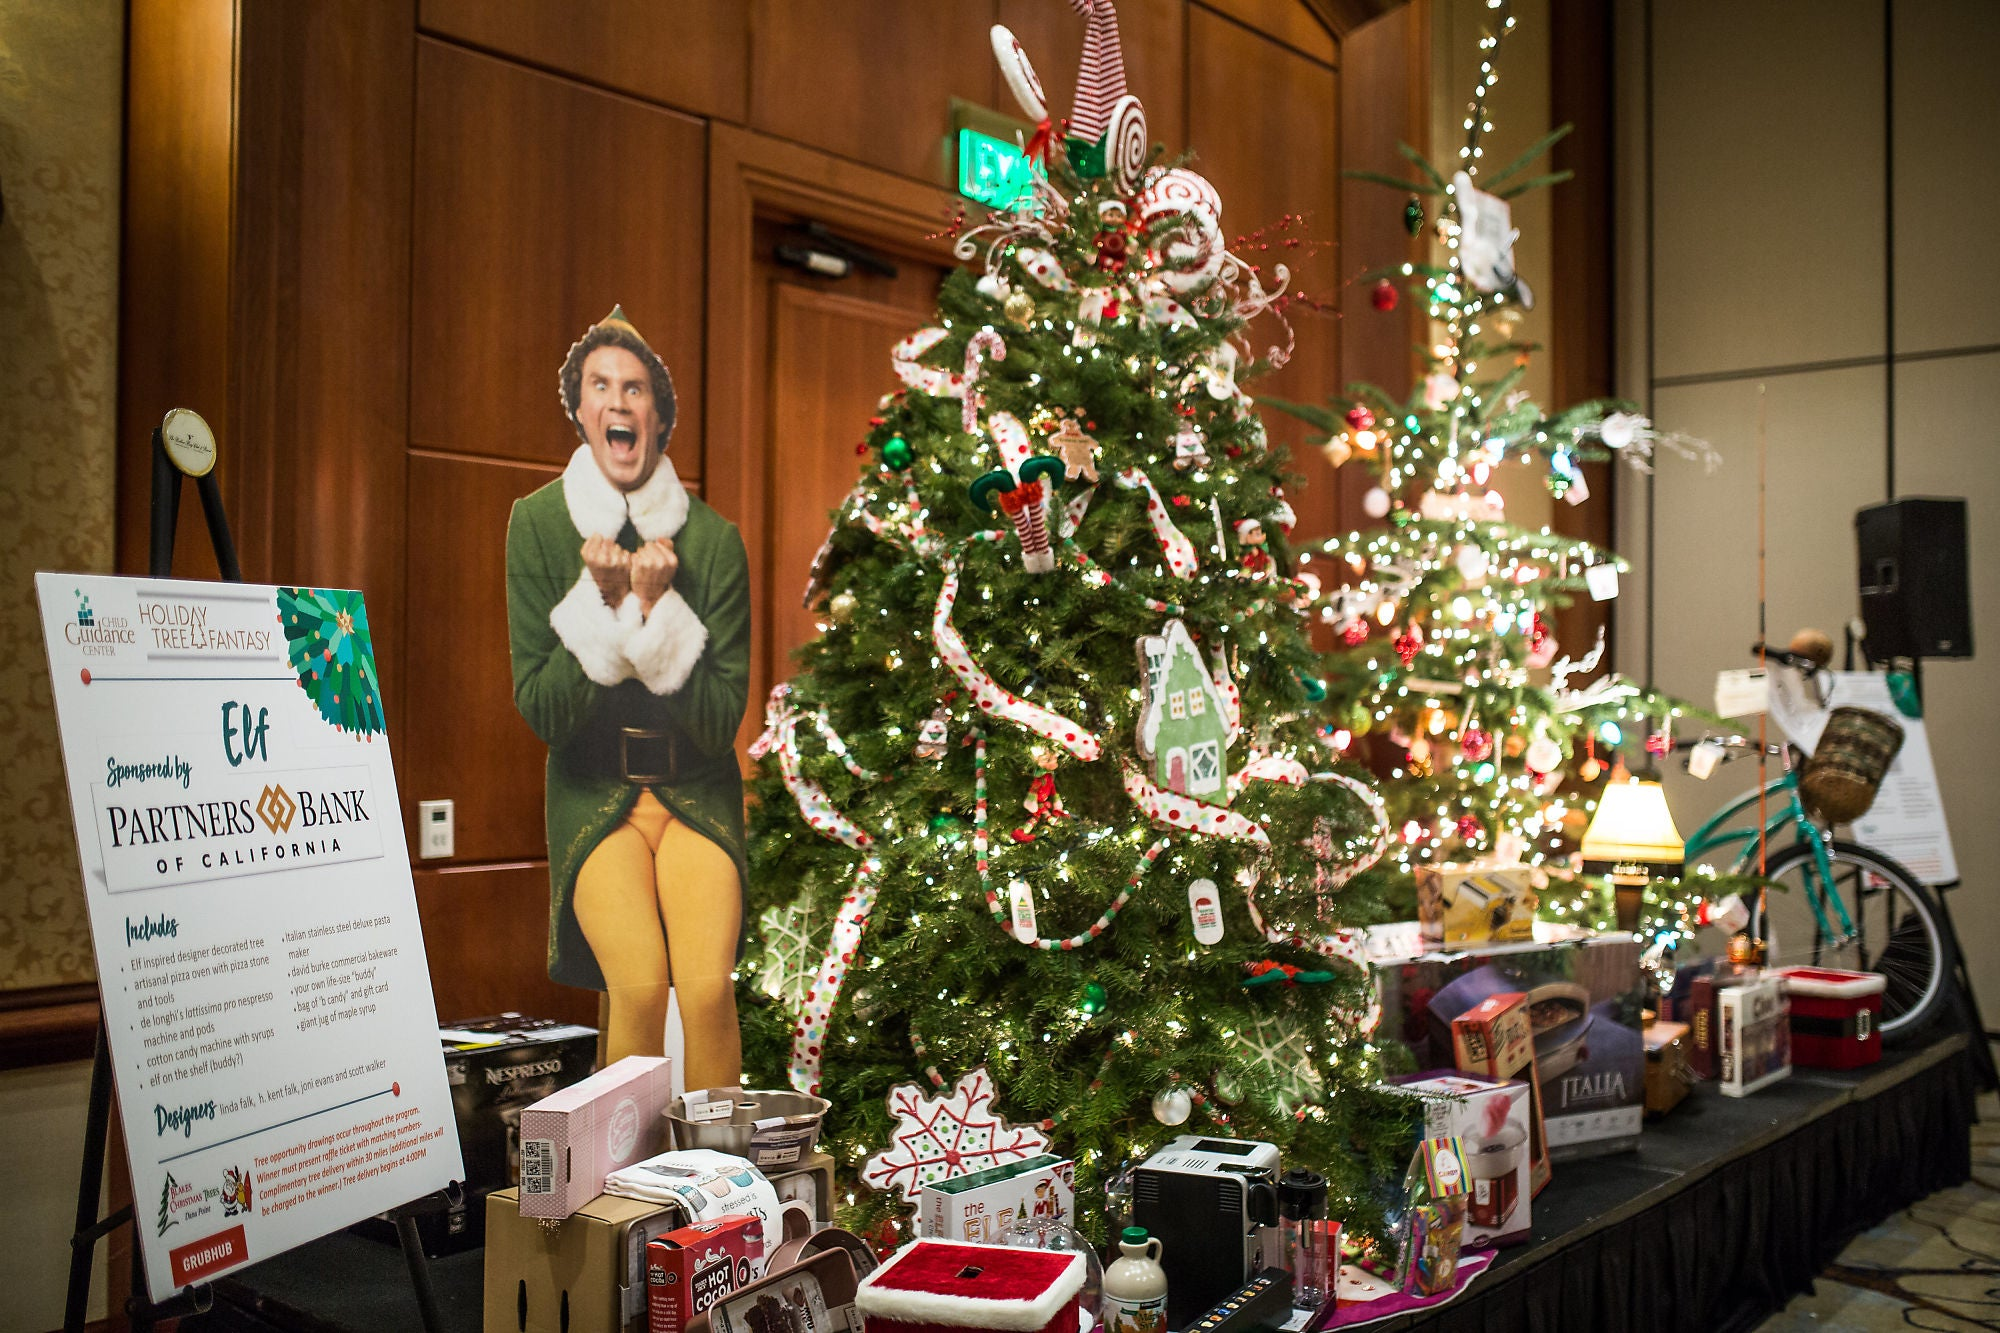 An Elf themed booth decorated with an Elf (Will Ferrell) cardboard standout, Christmas tress surrounded by items, and an information board